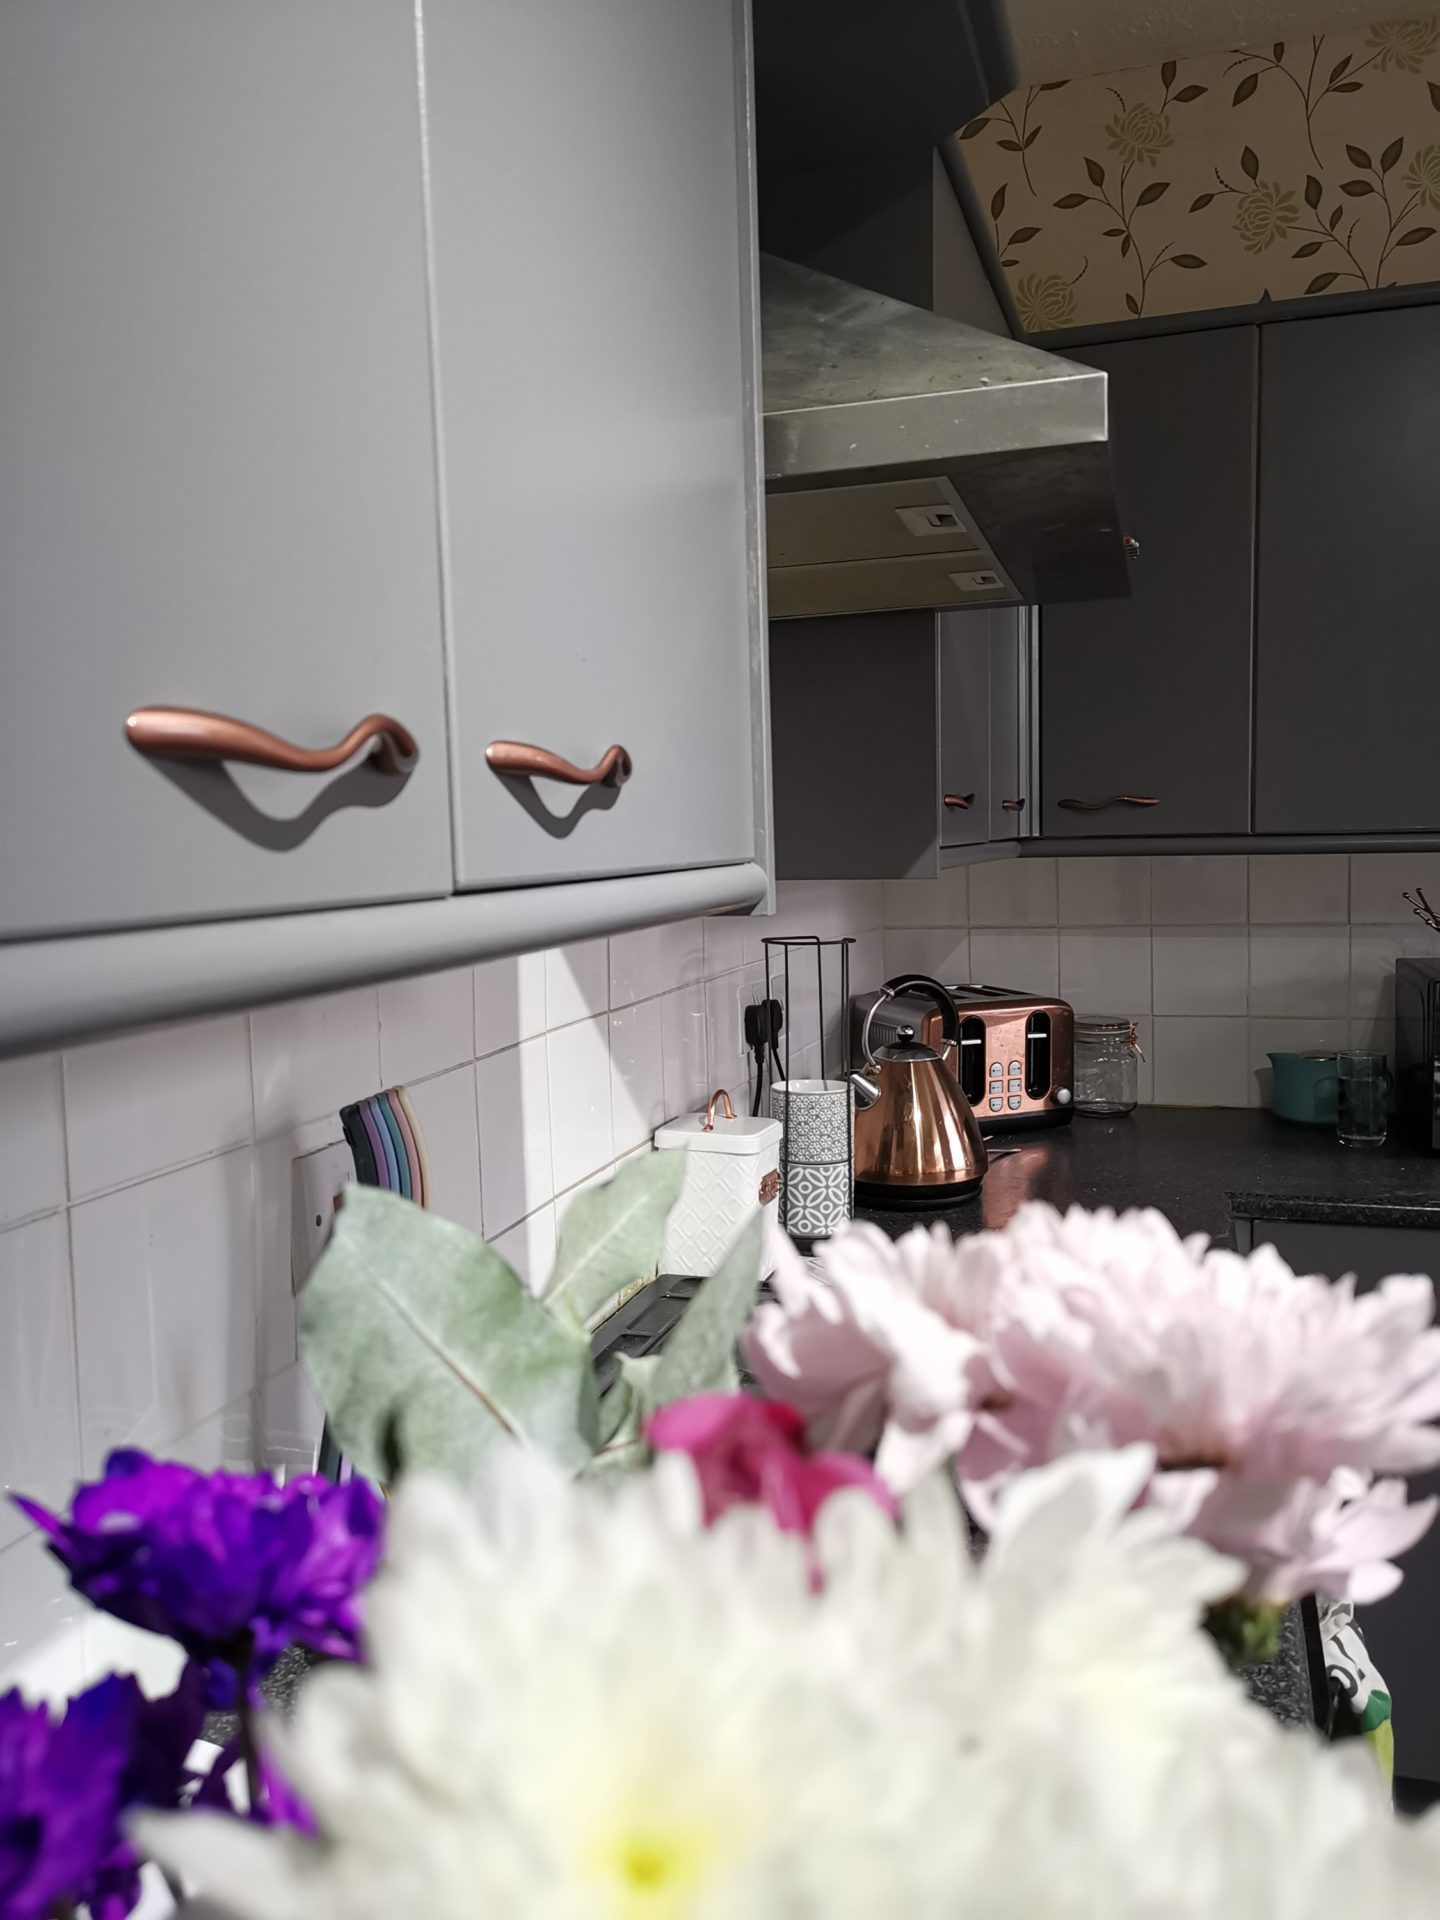 Kitchen Renovation under £250 - After Photo - Grey and Rose Gold Accents